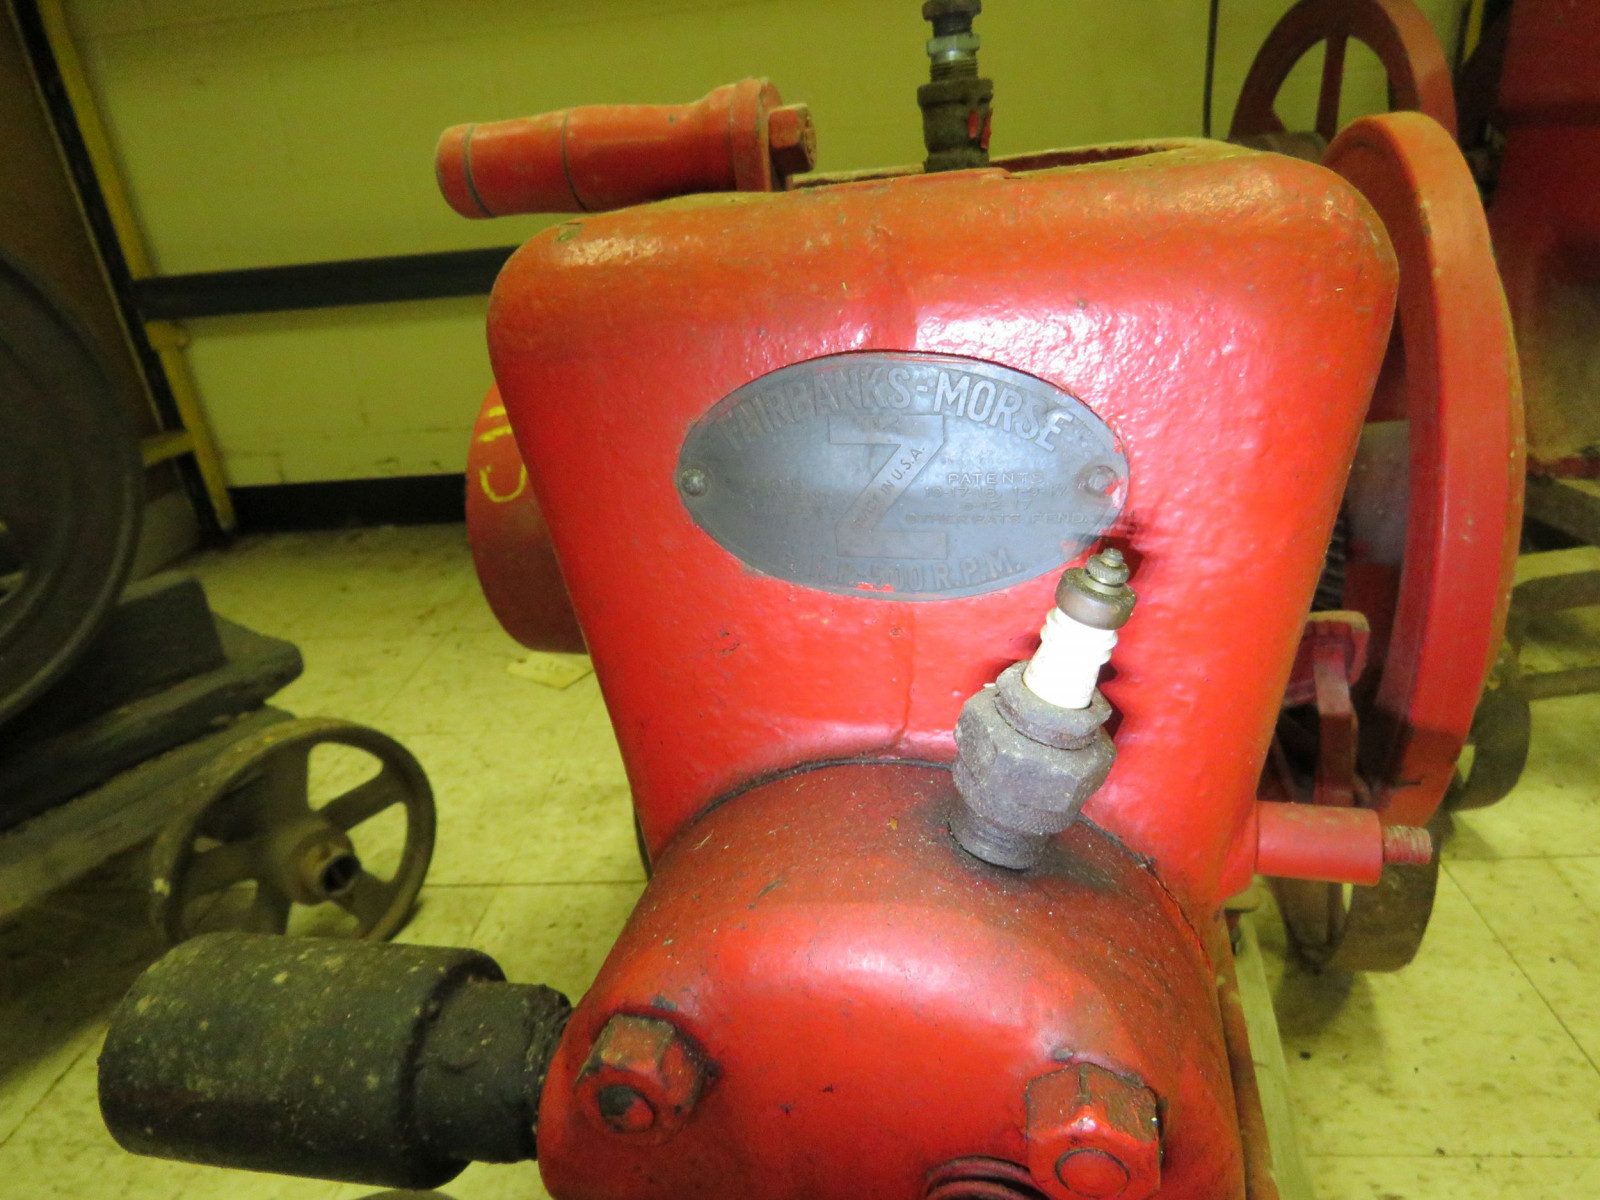 Fairbanks Morse Type Z 1 1/2 HP Stationary Gas Engine - Image 4